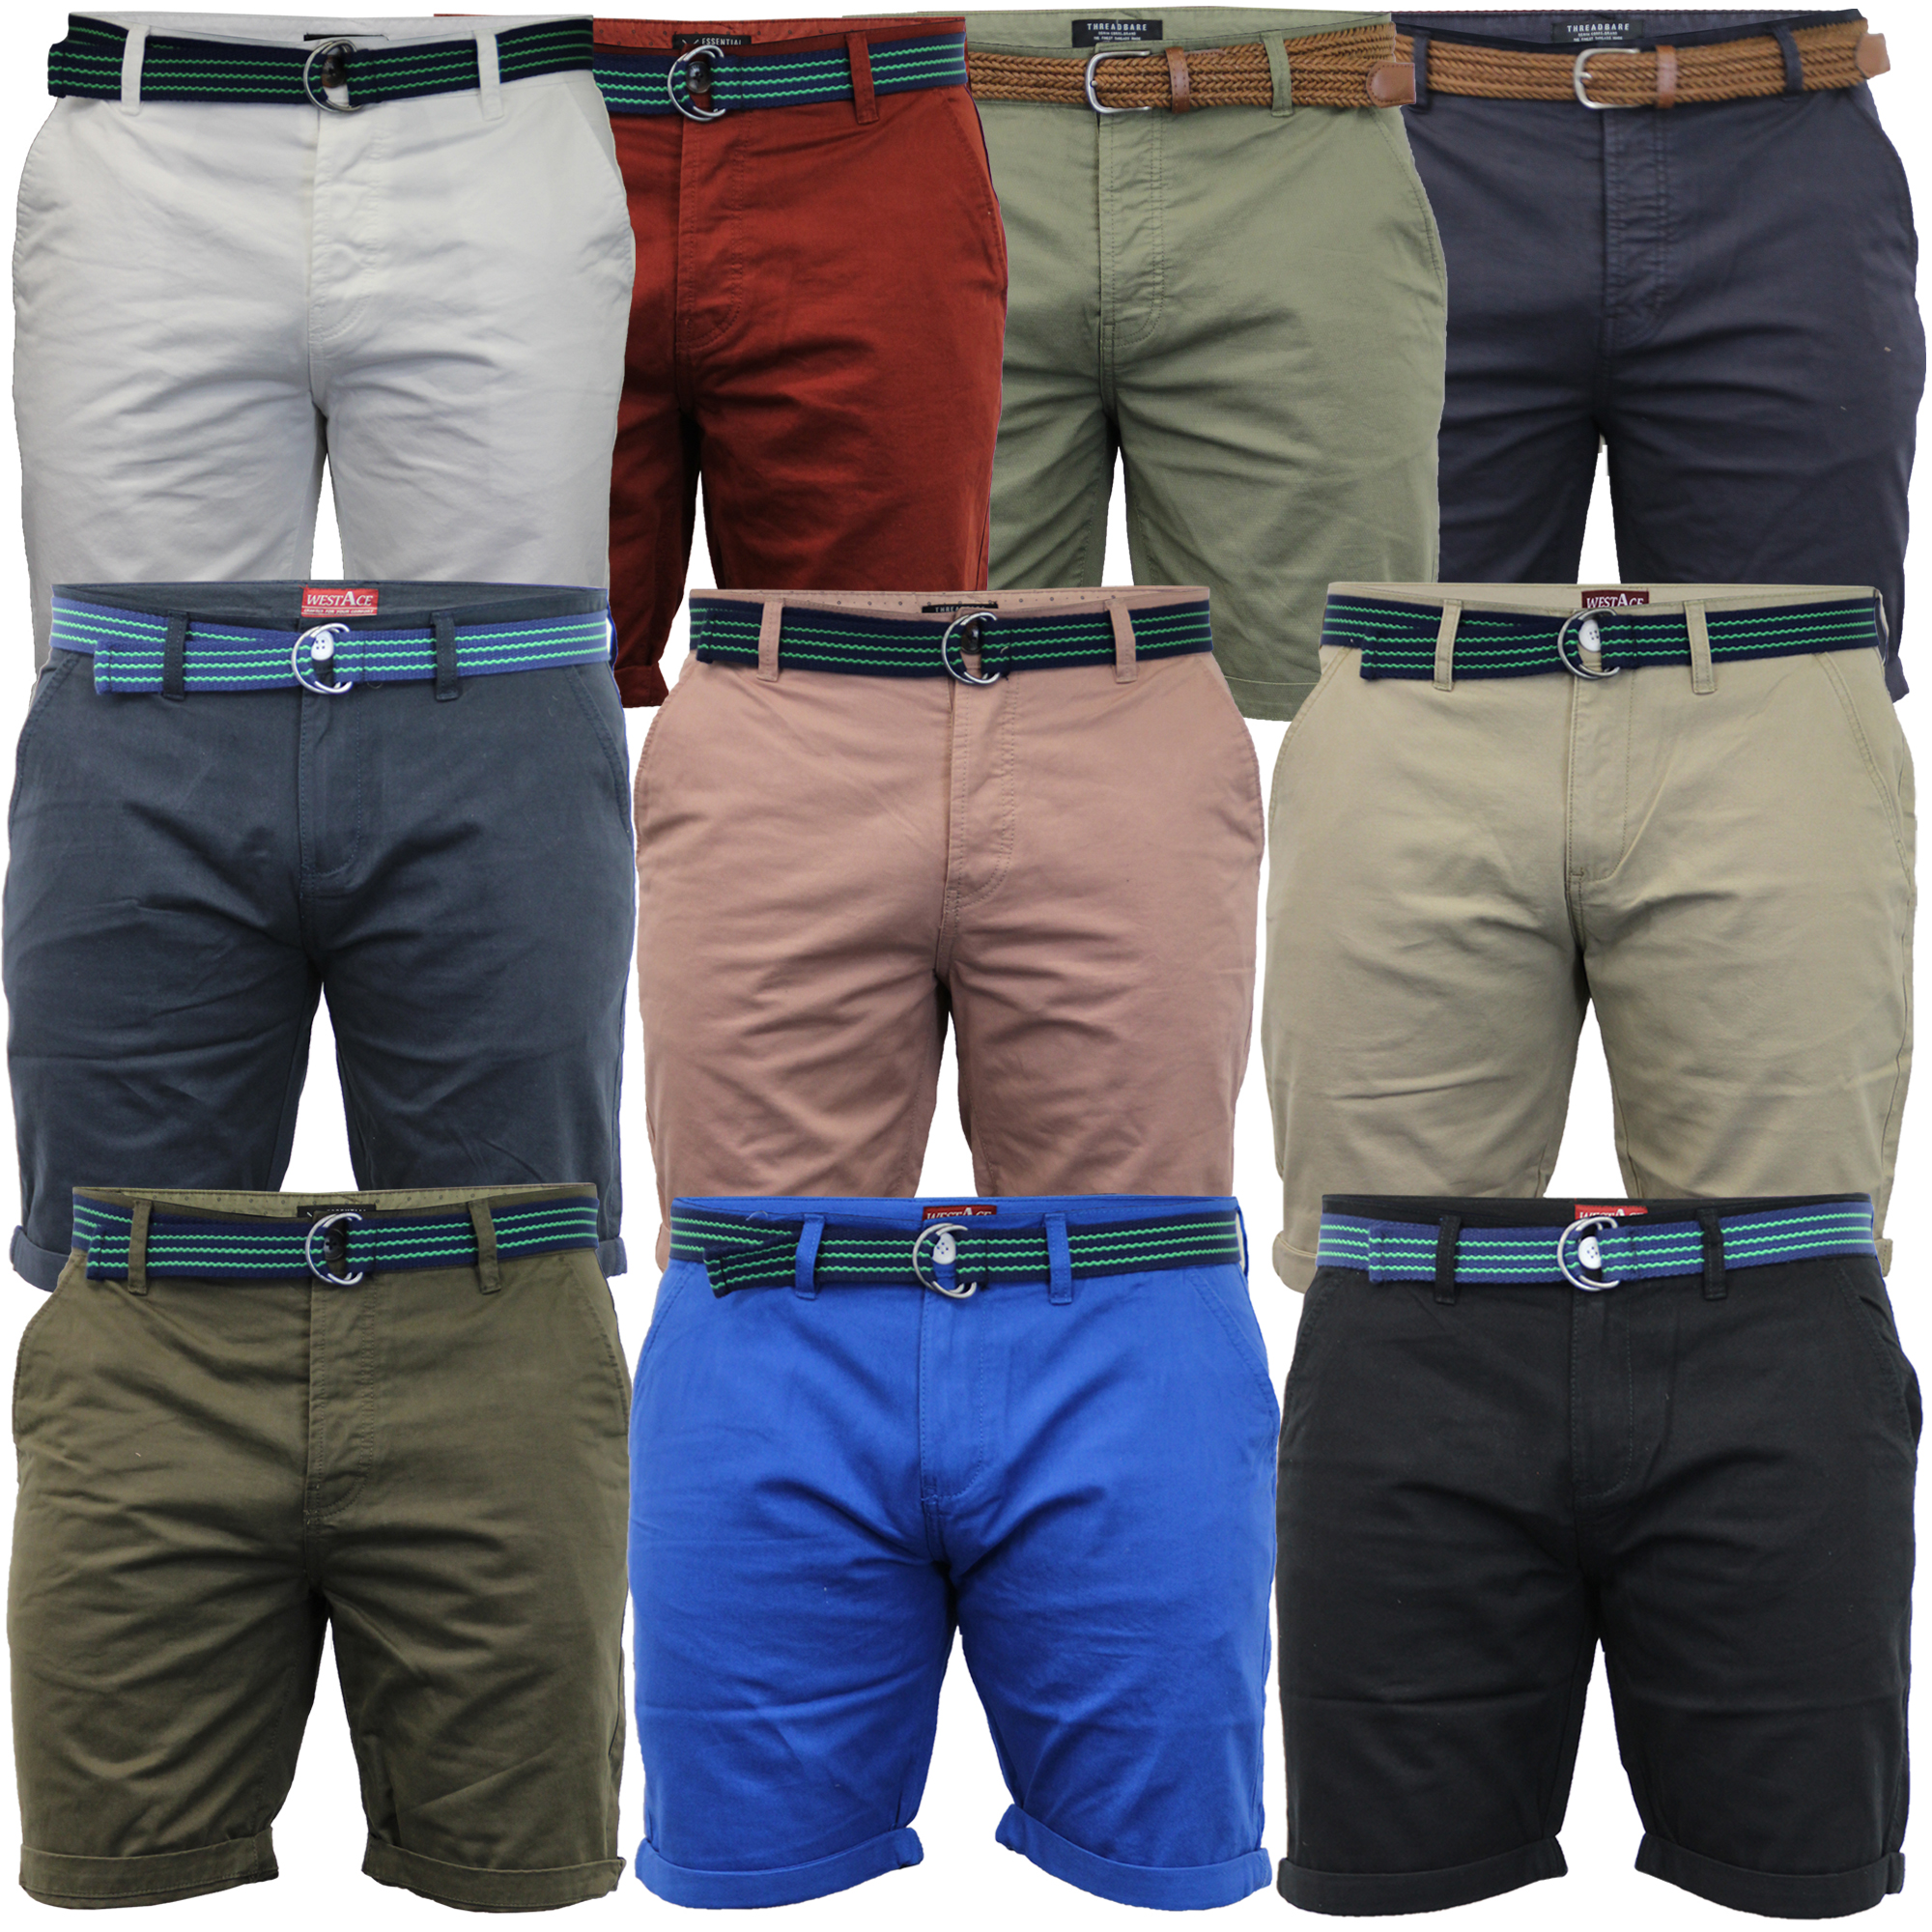 Mens-Chino-Shorts-Threadbare-Belted-Westace-Pants-Knee-Length-Roll-Up-Summer-New thumbnail 4